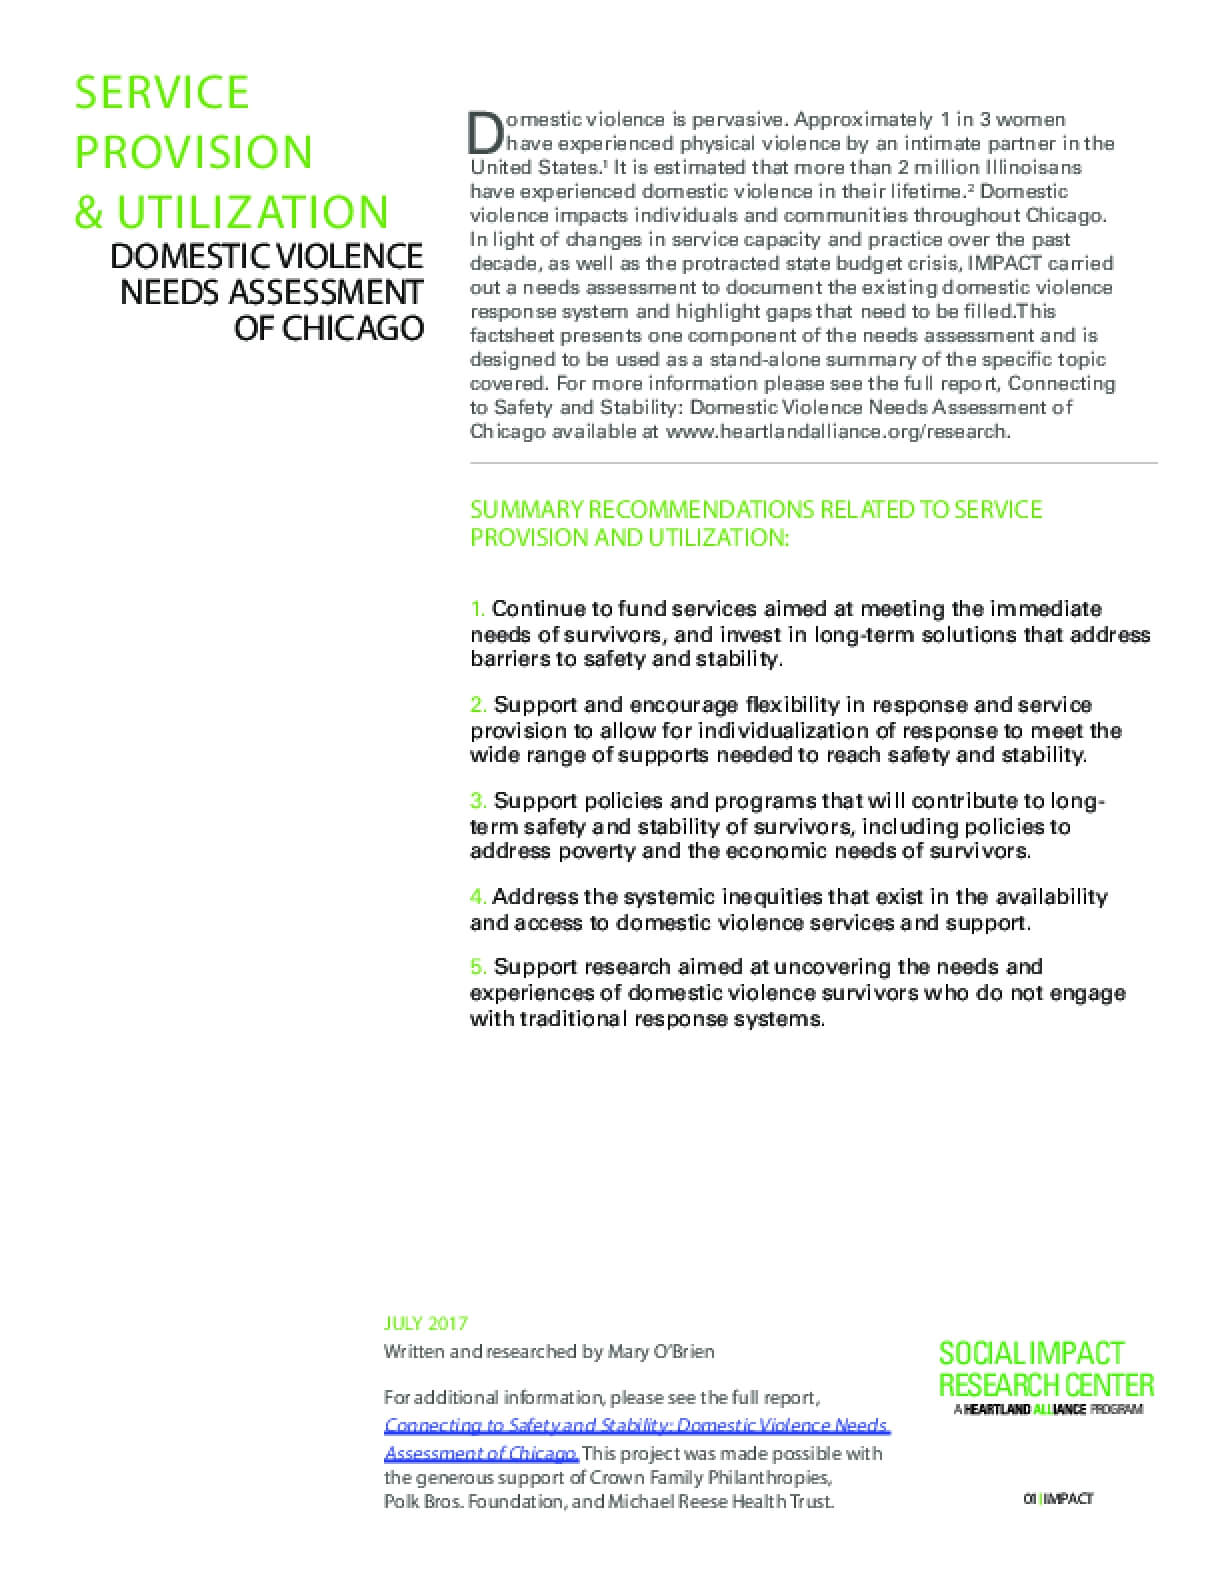 Factsheet: Service Provision and Utilization (DV Landscape Report)